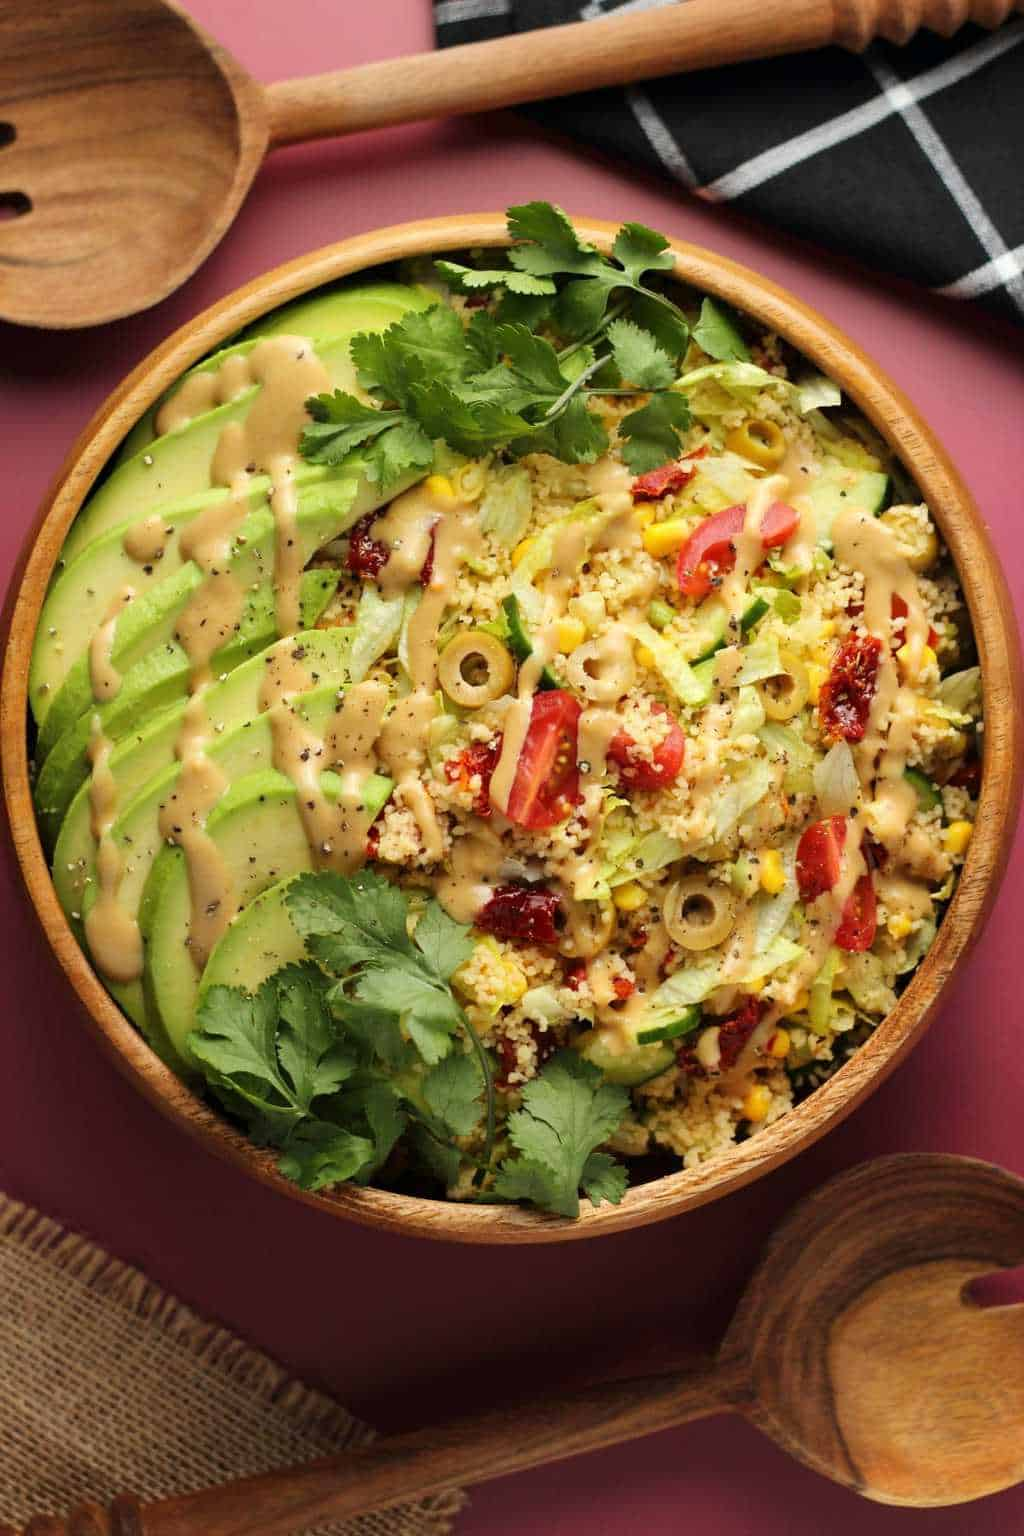 Vegan couscous salad topped with a tahini dressing in a wooden salad bowl.